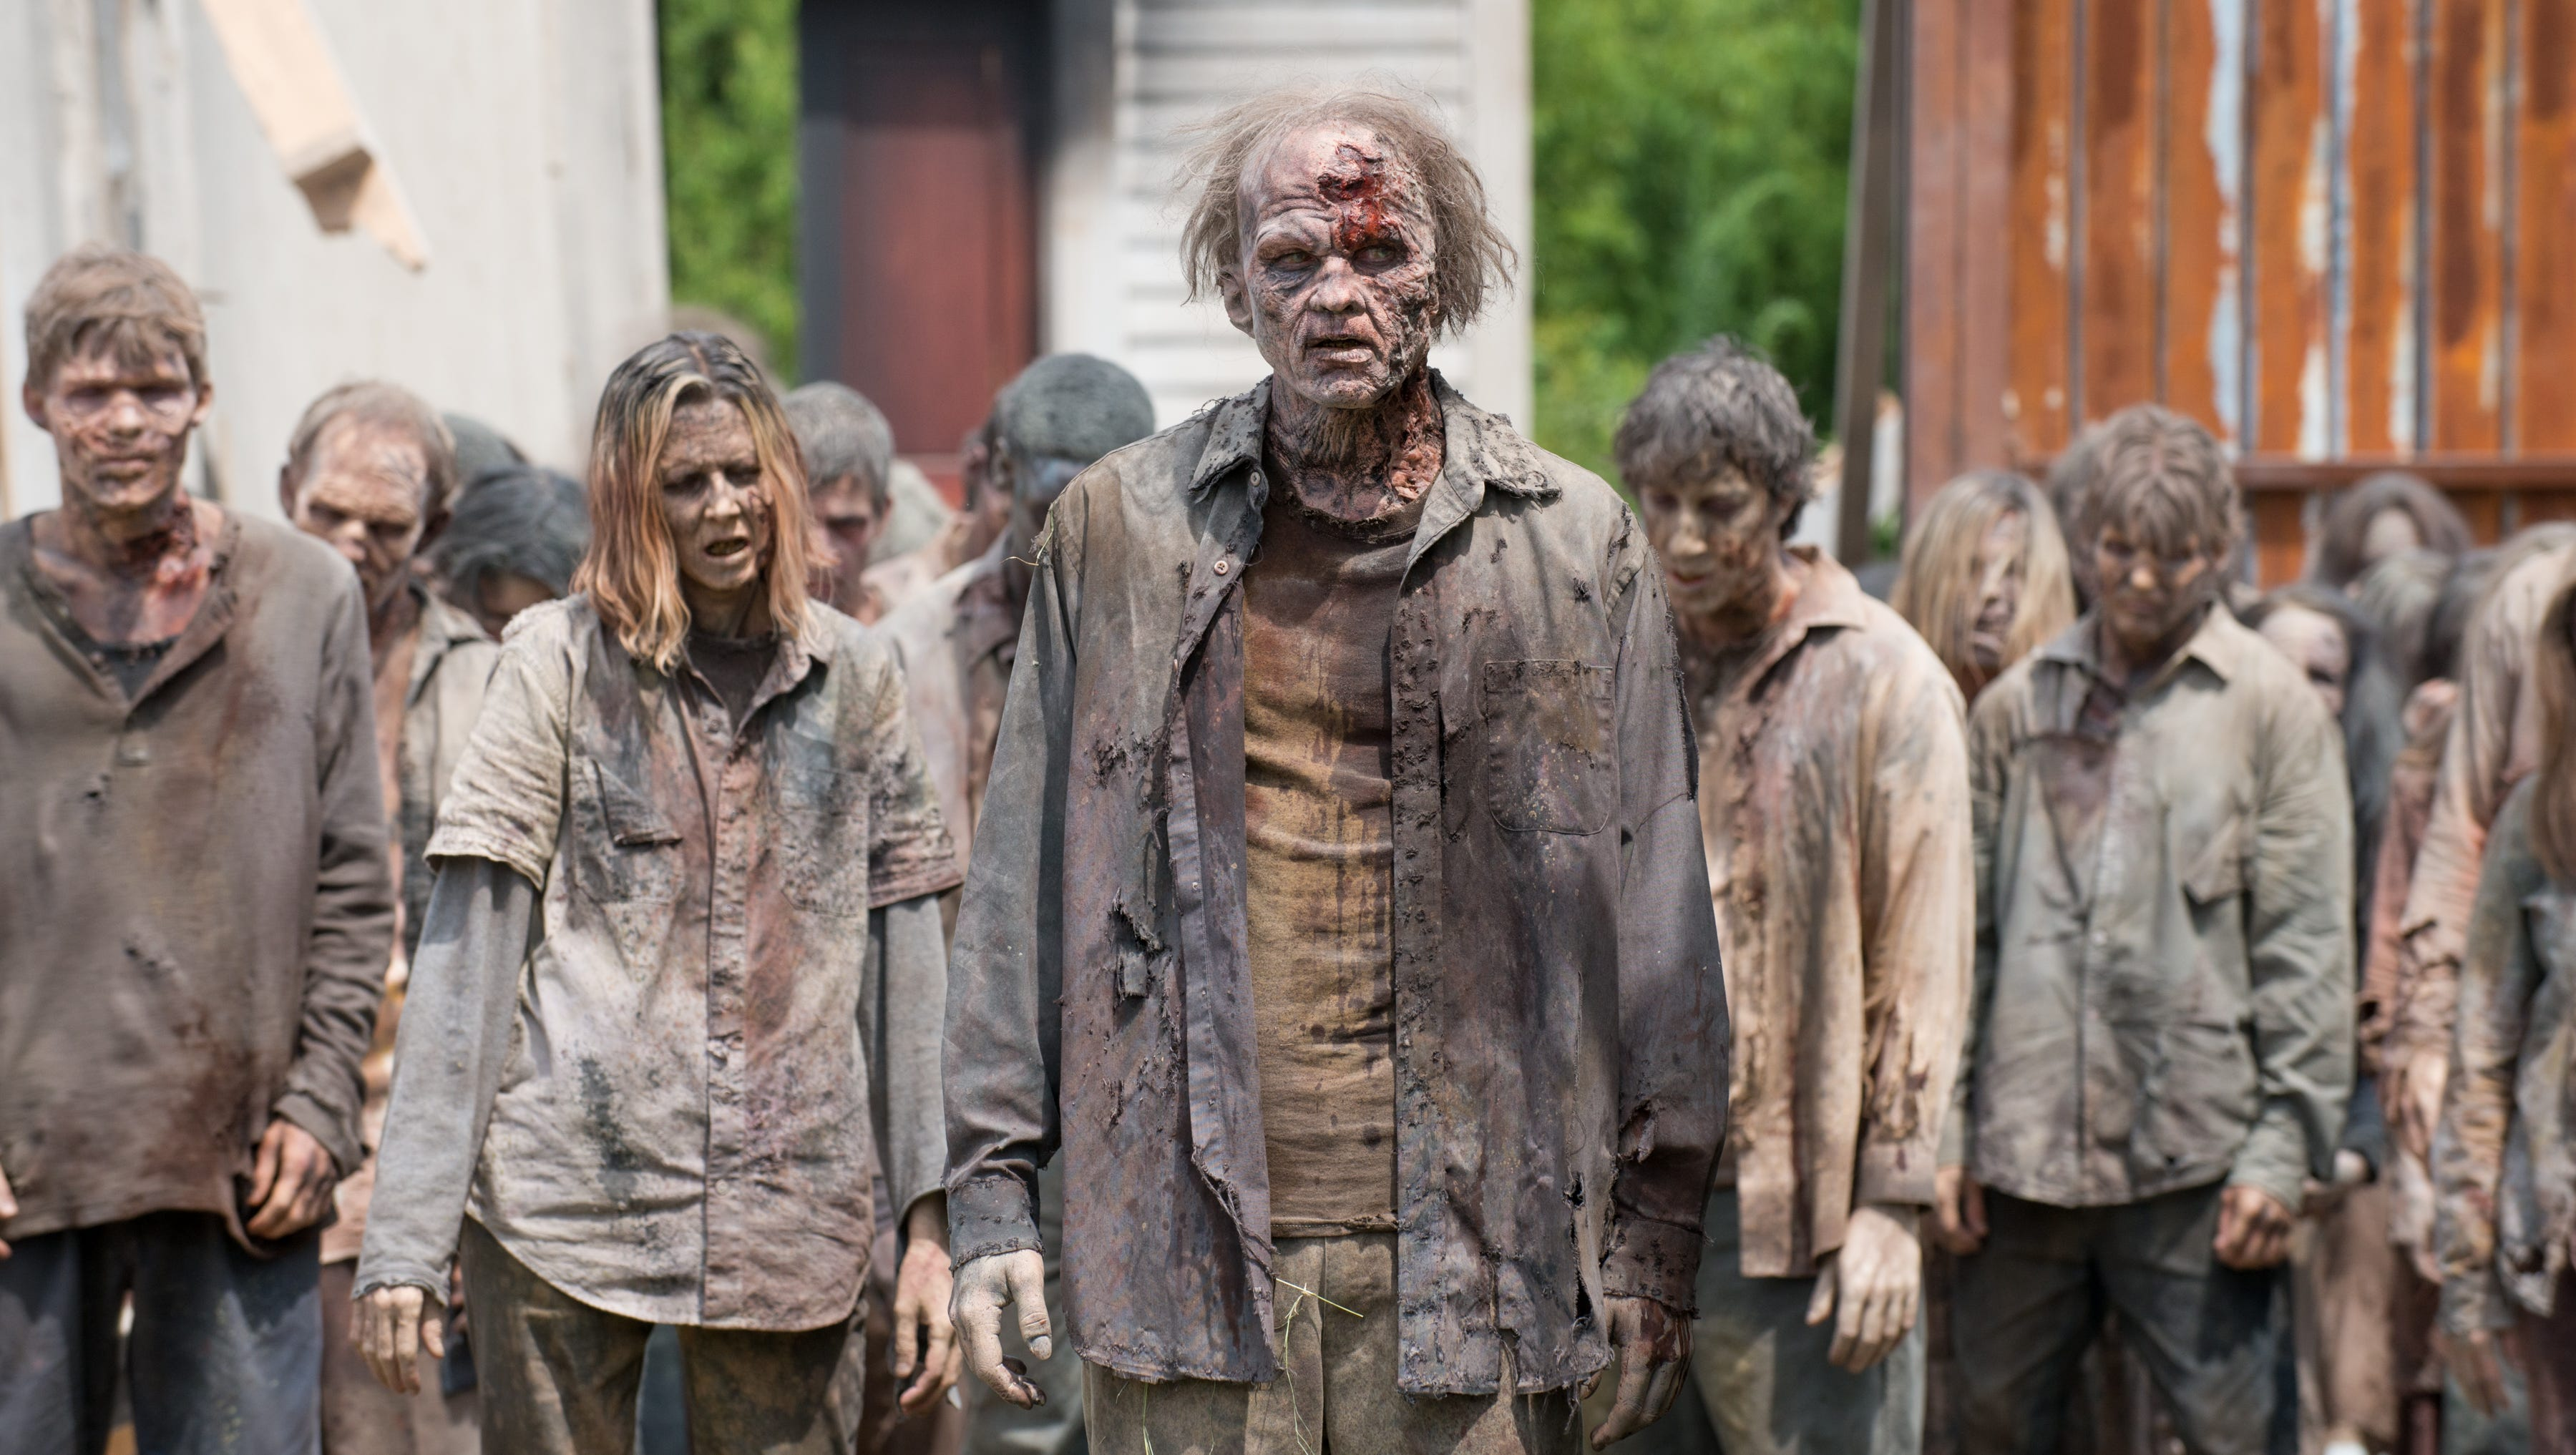 Walking Dead' to invade Universal Studios Hollywood